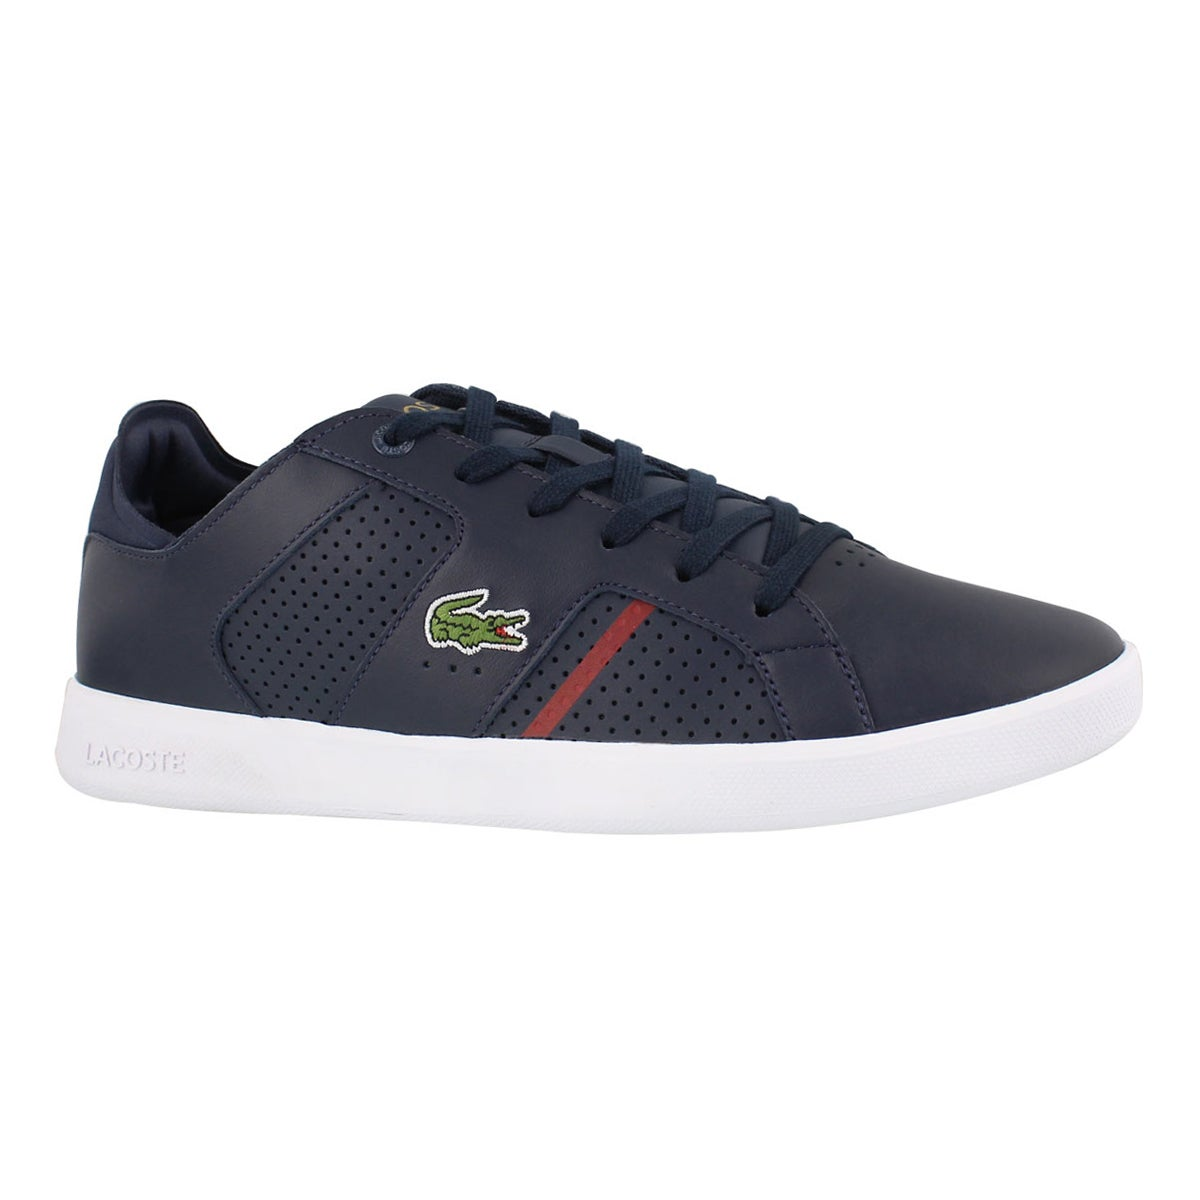 Men's NOVAS CT 118 1 navy/red sneaker